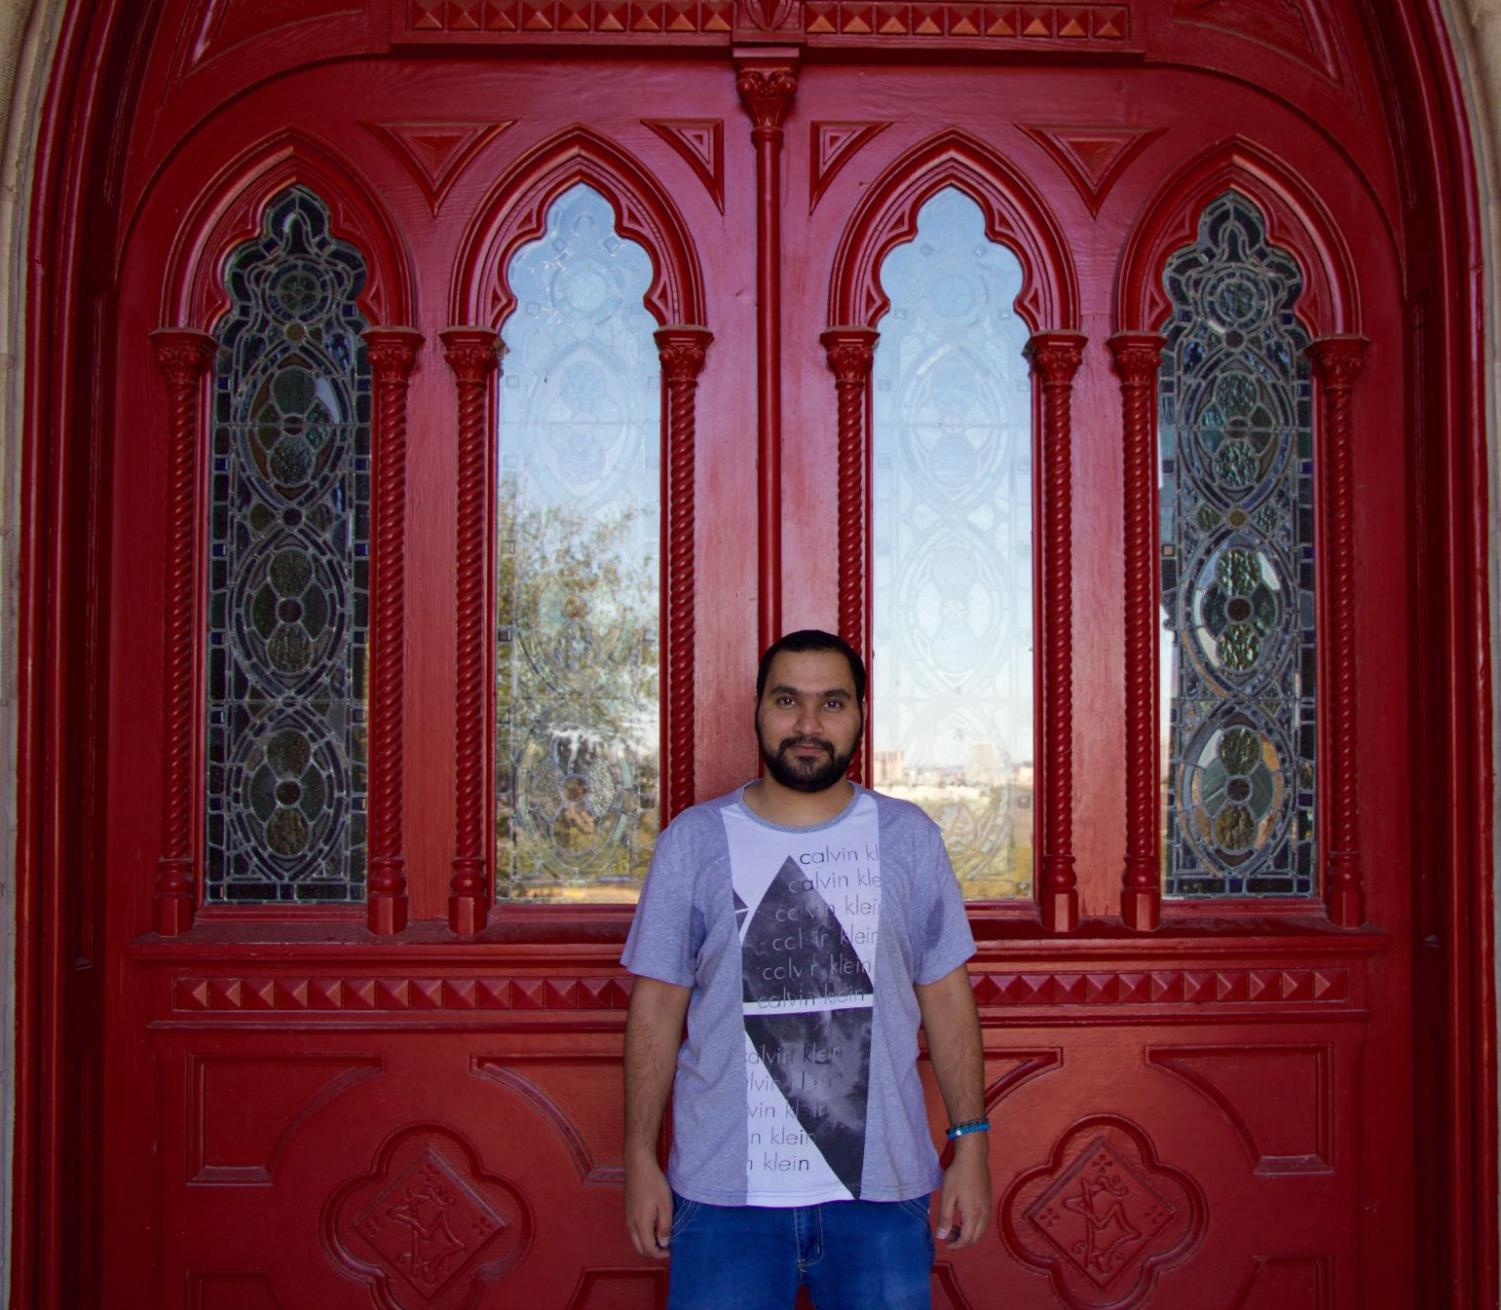 International student Omar Alazmi stands in front of the red doors.